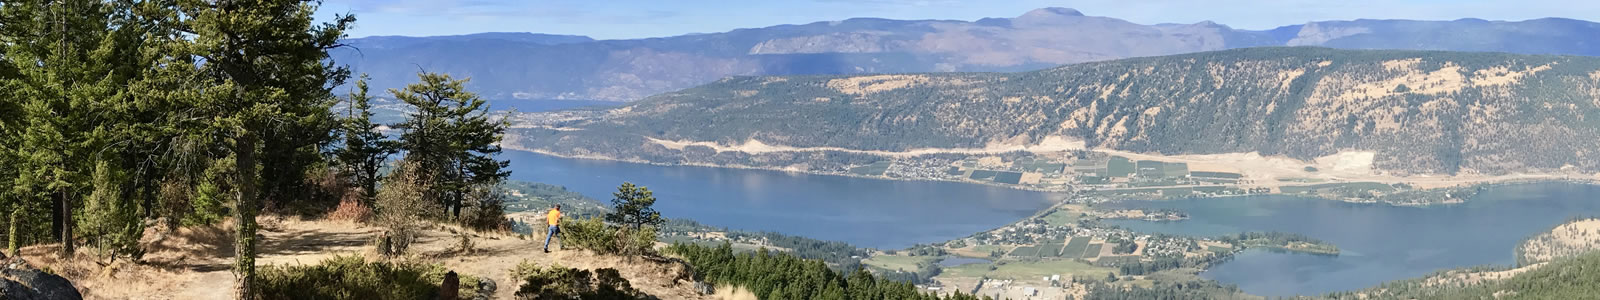 The scenic Okanagan valley